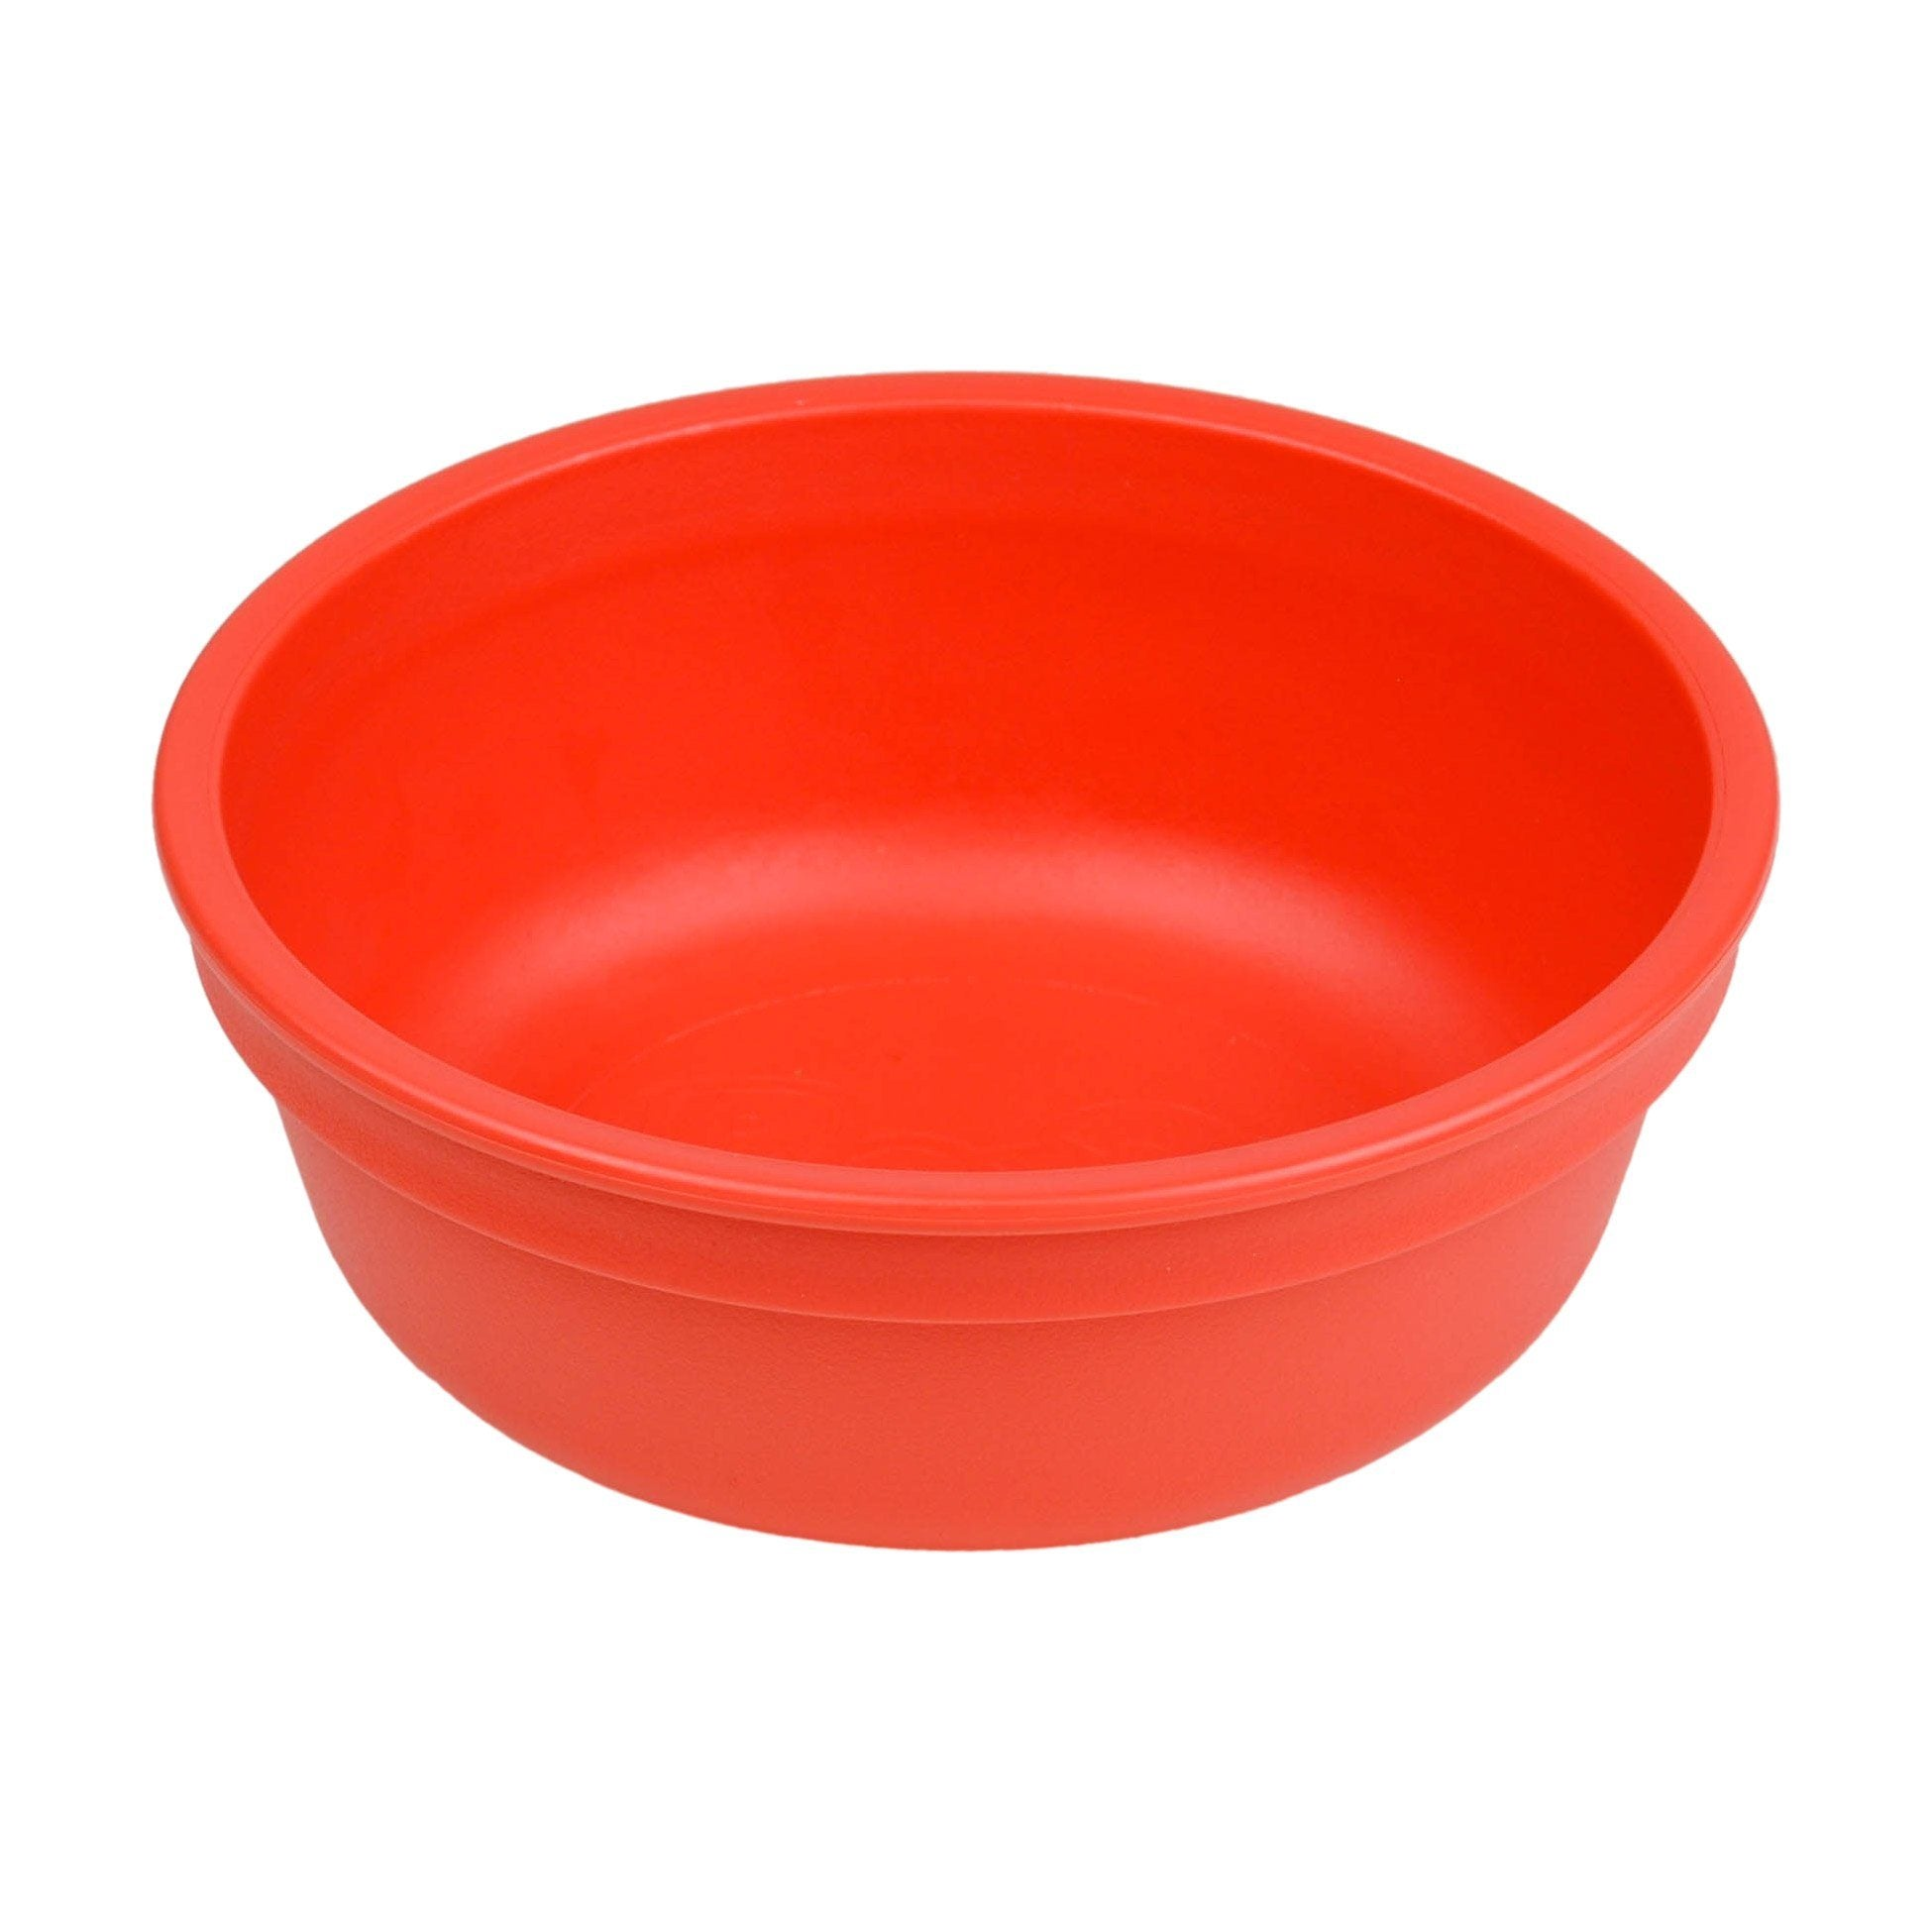 Bowl (Red)